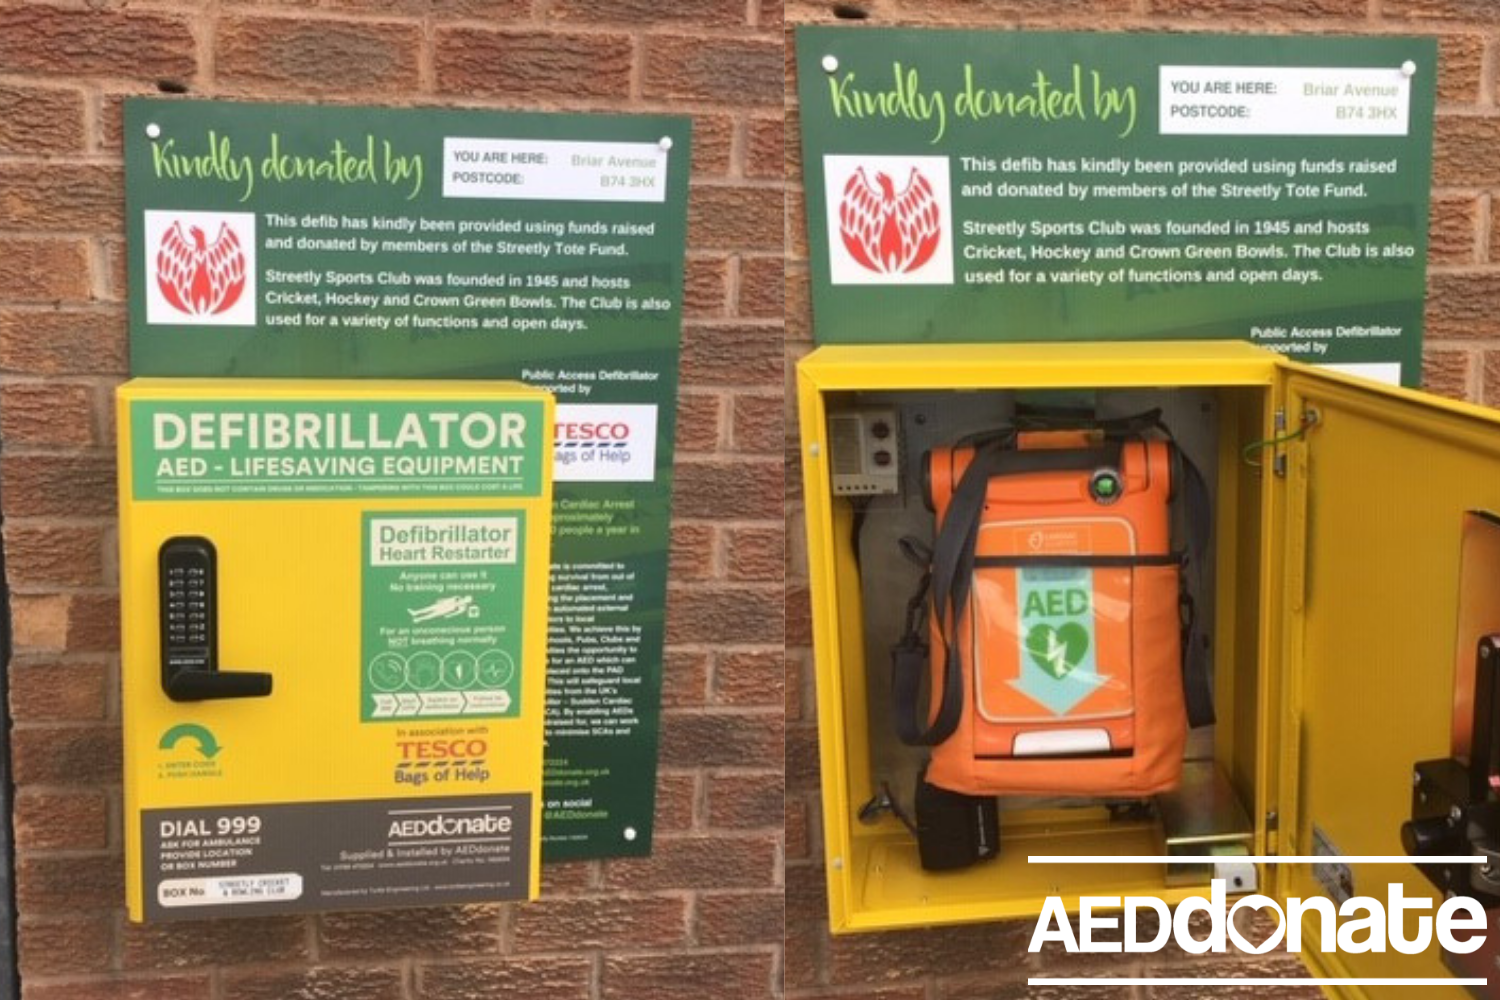 A defibrillator for Streetly Sports Club